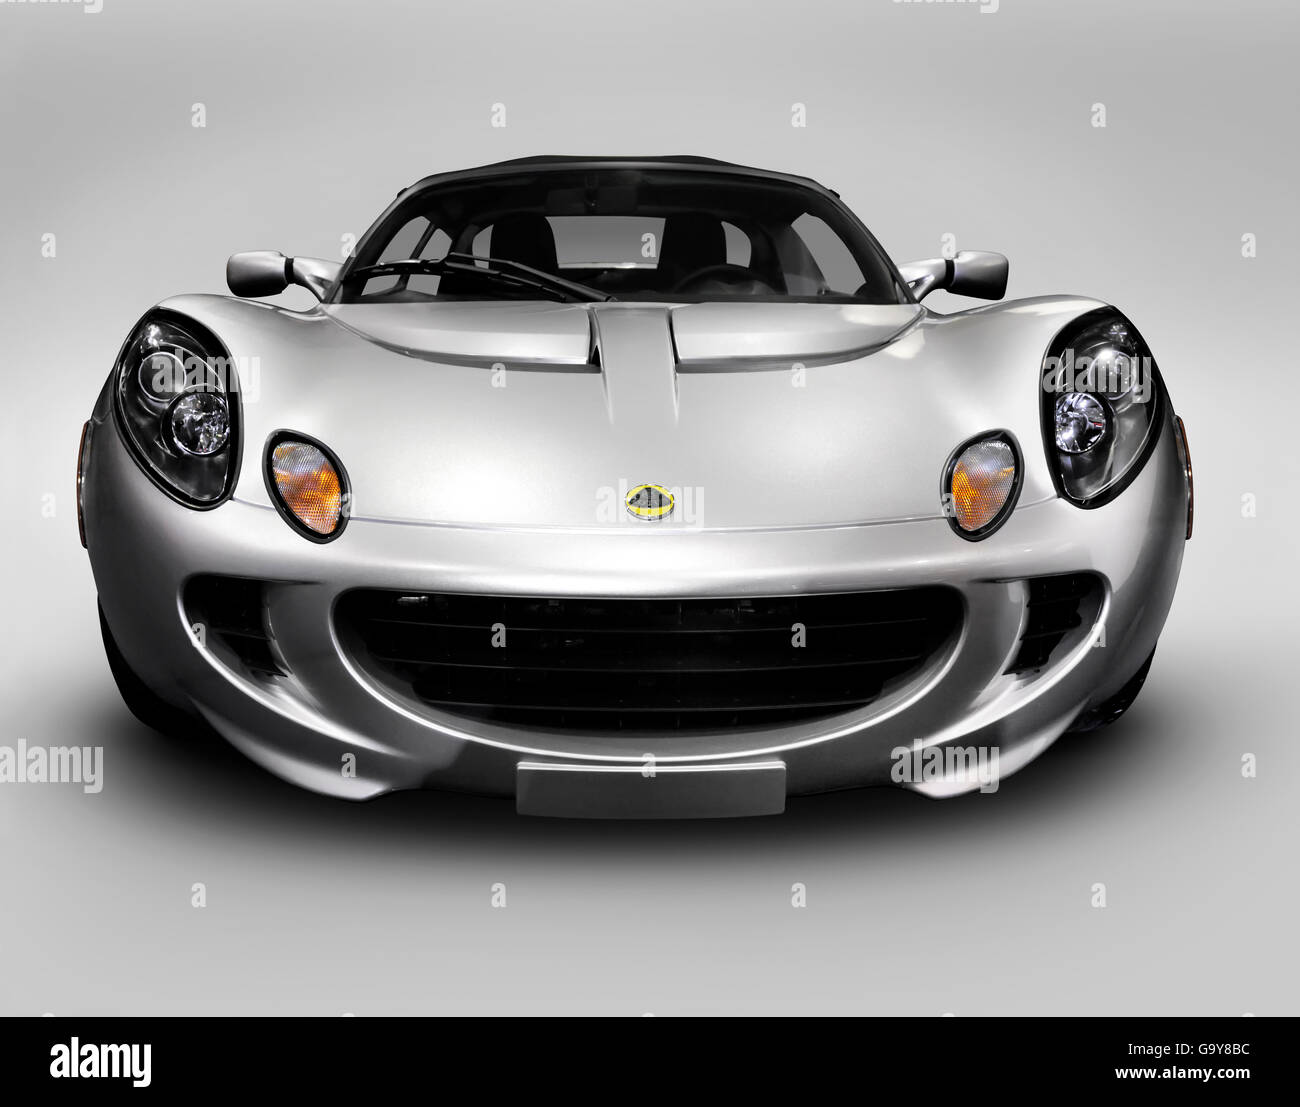 2008 Silver Lotus Elise sports car front view - Stock Image